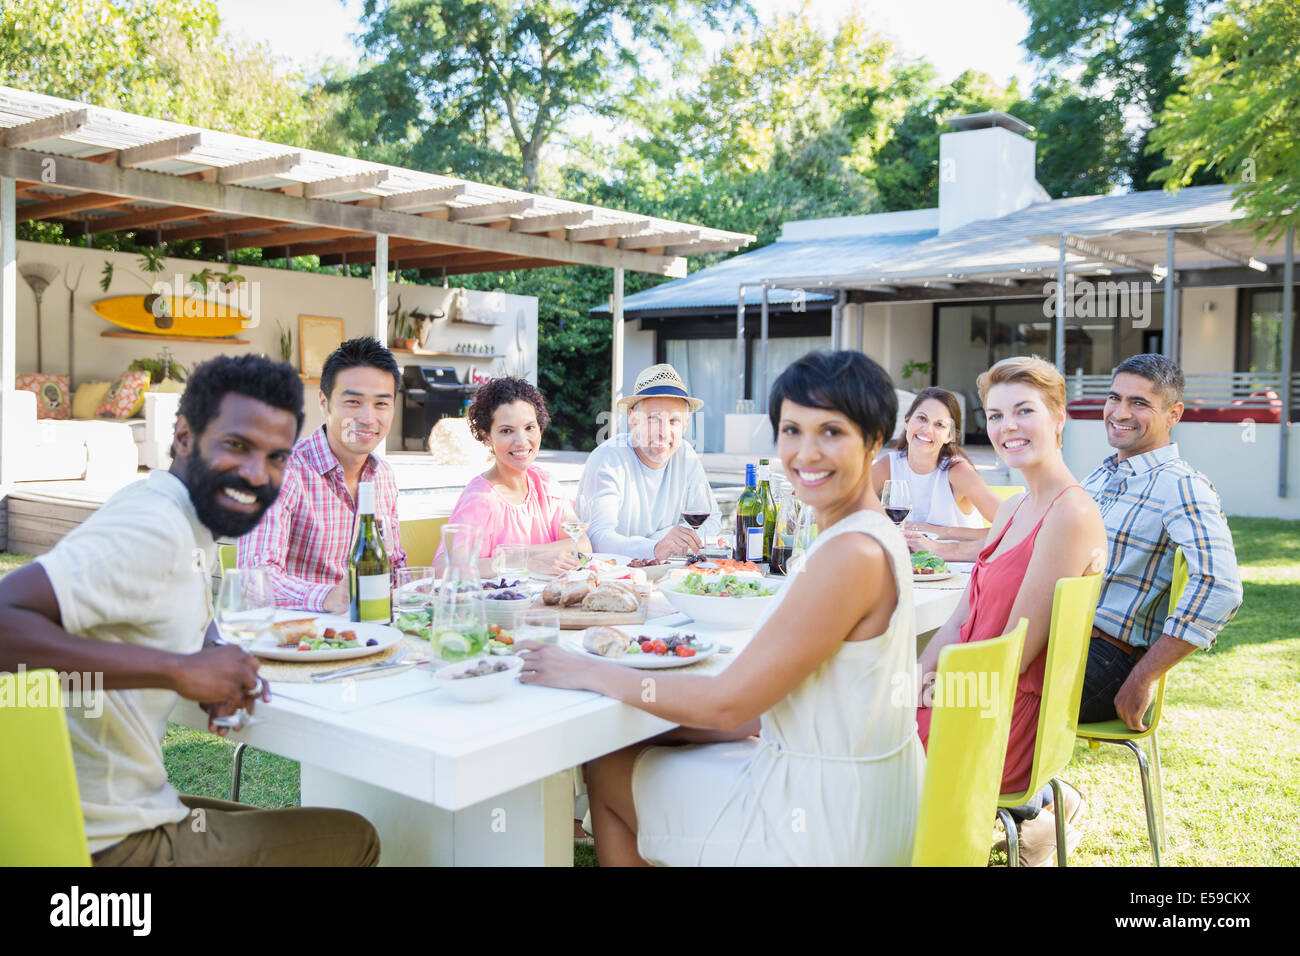 Friends smiling at table outdoors - Stock Image